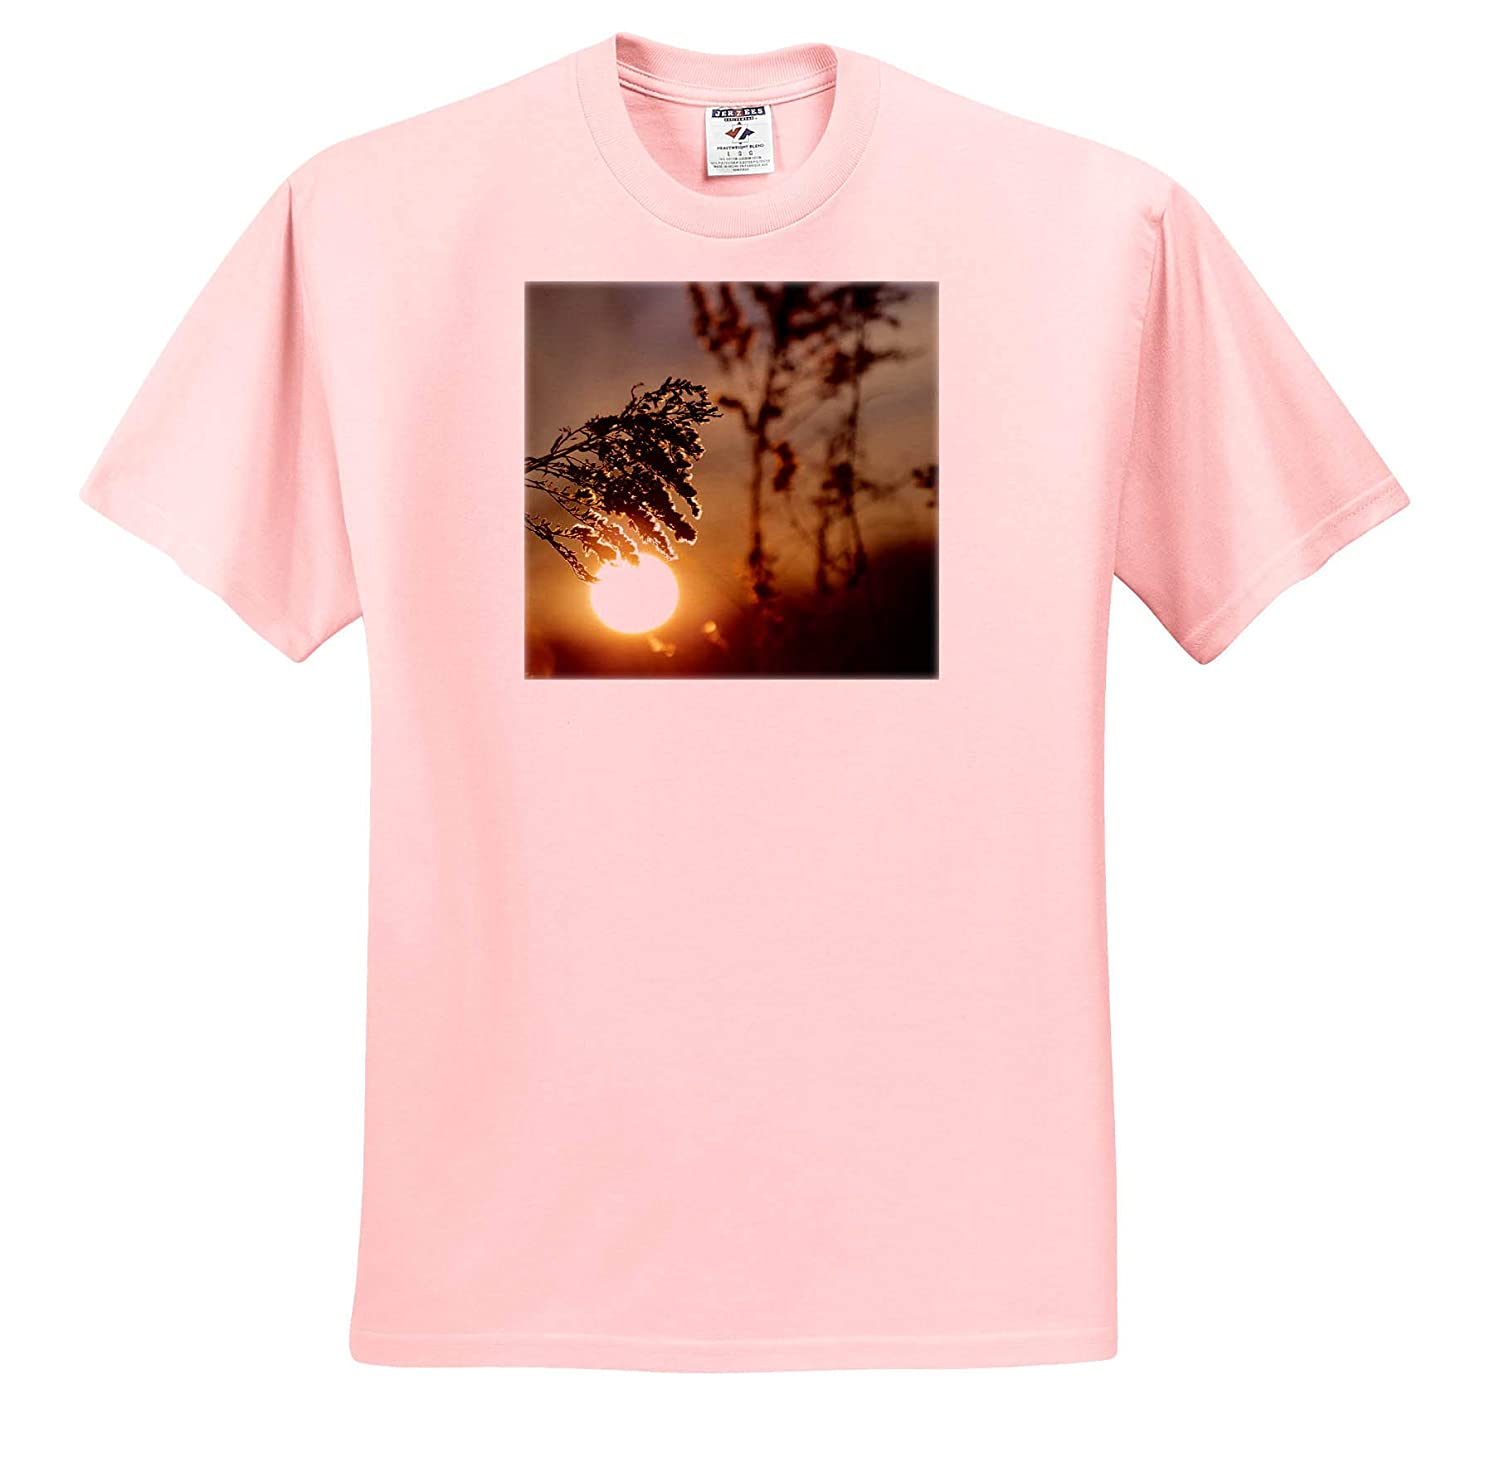 ts/_308736 3dRose Stamp City - Adult T-Shirt XL Photograph of a Sunrise Through a Field of Wheat Nature